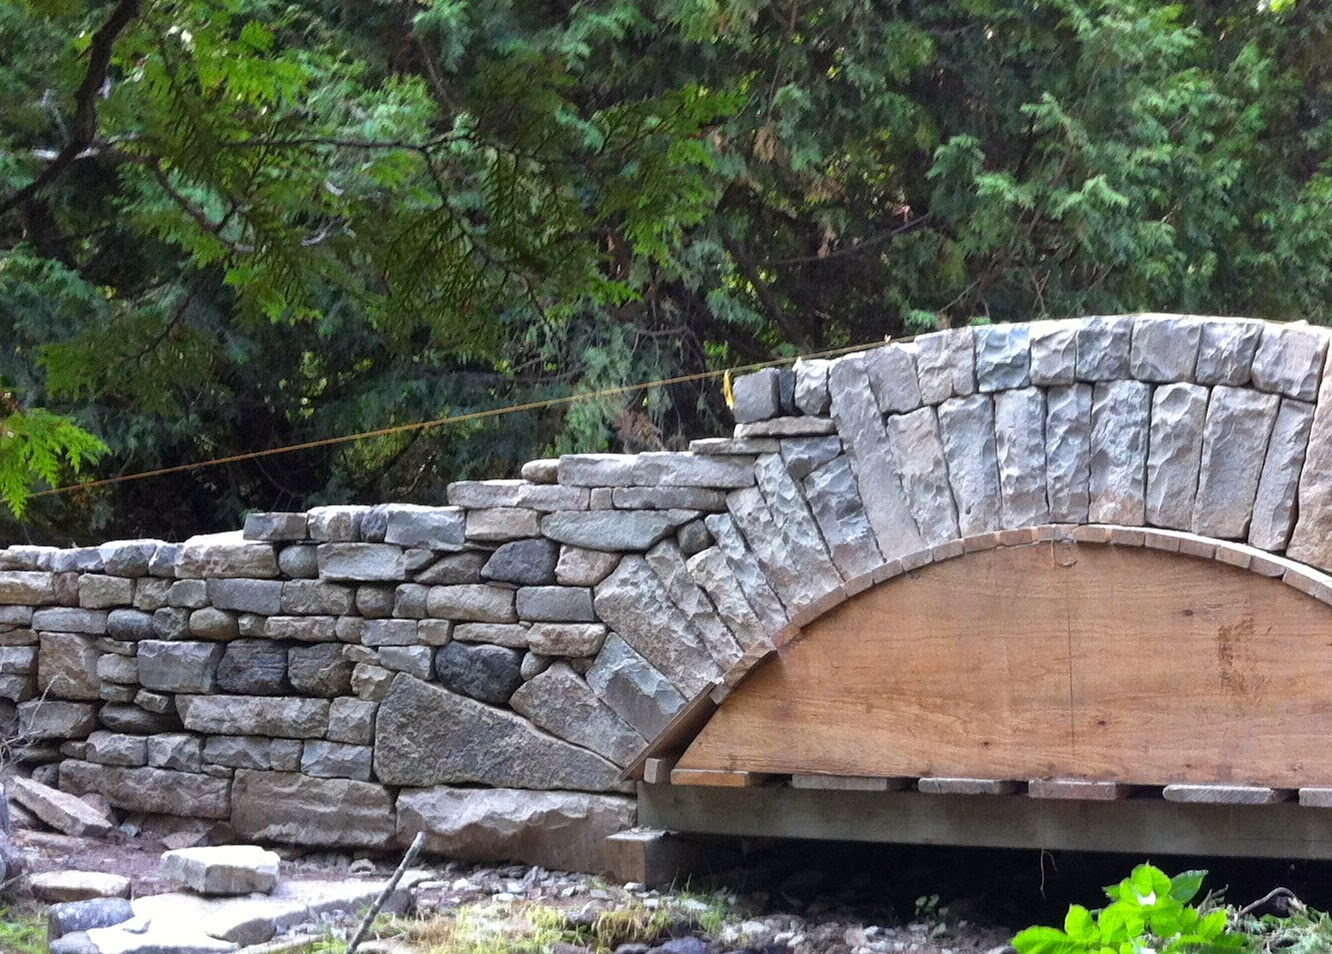 A Lot Of The Final Look Stone Bridge And How Satisfying Whole Structure Is Visually Determined By Pattern Building Stones That Form